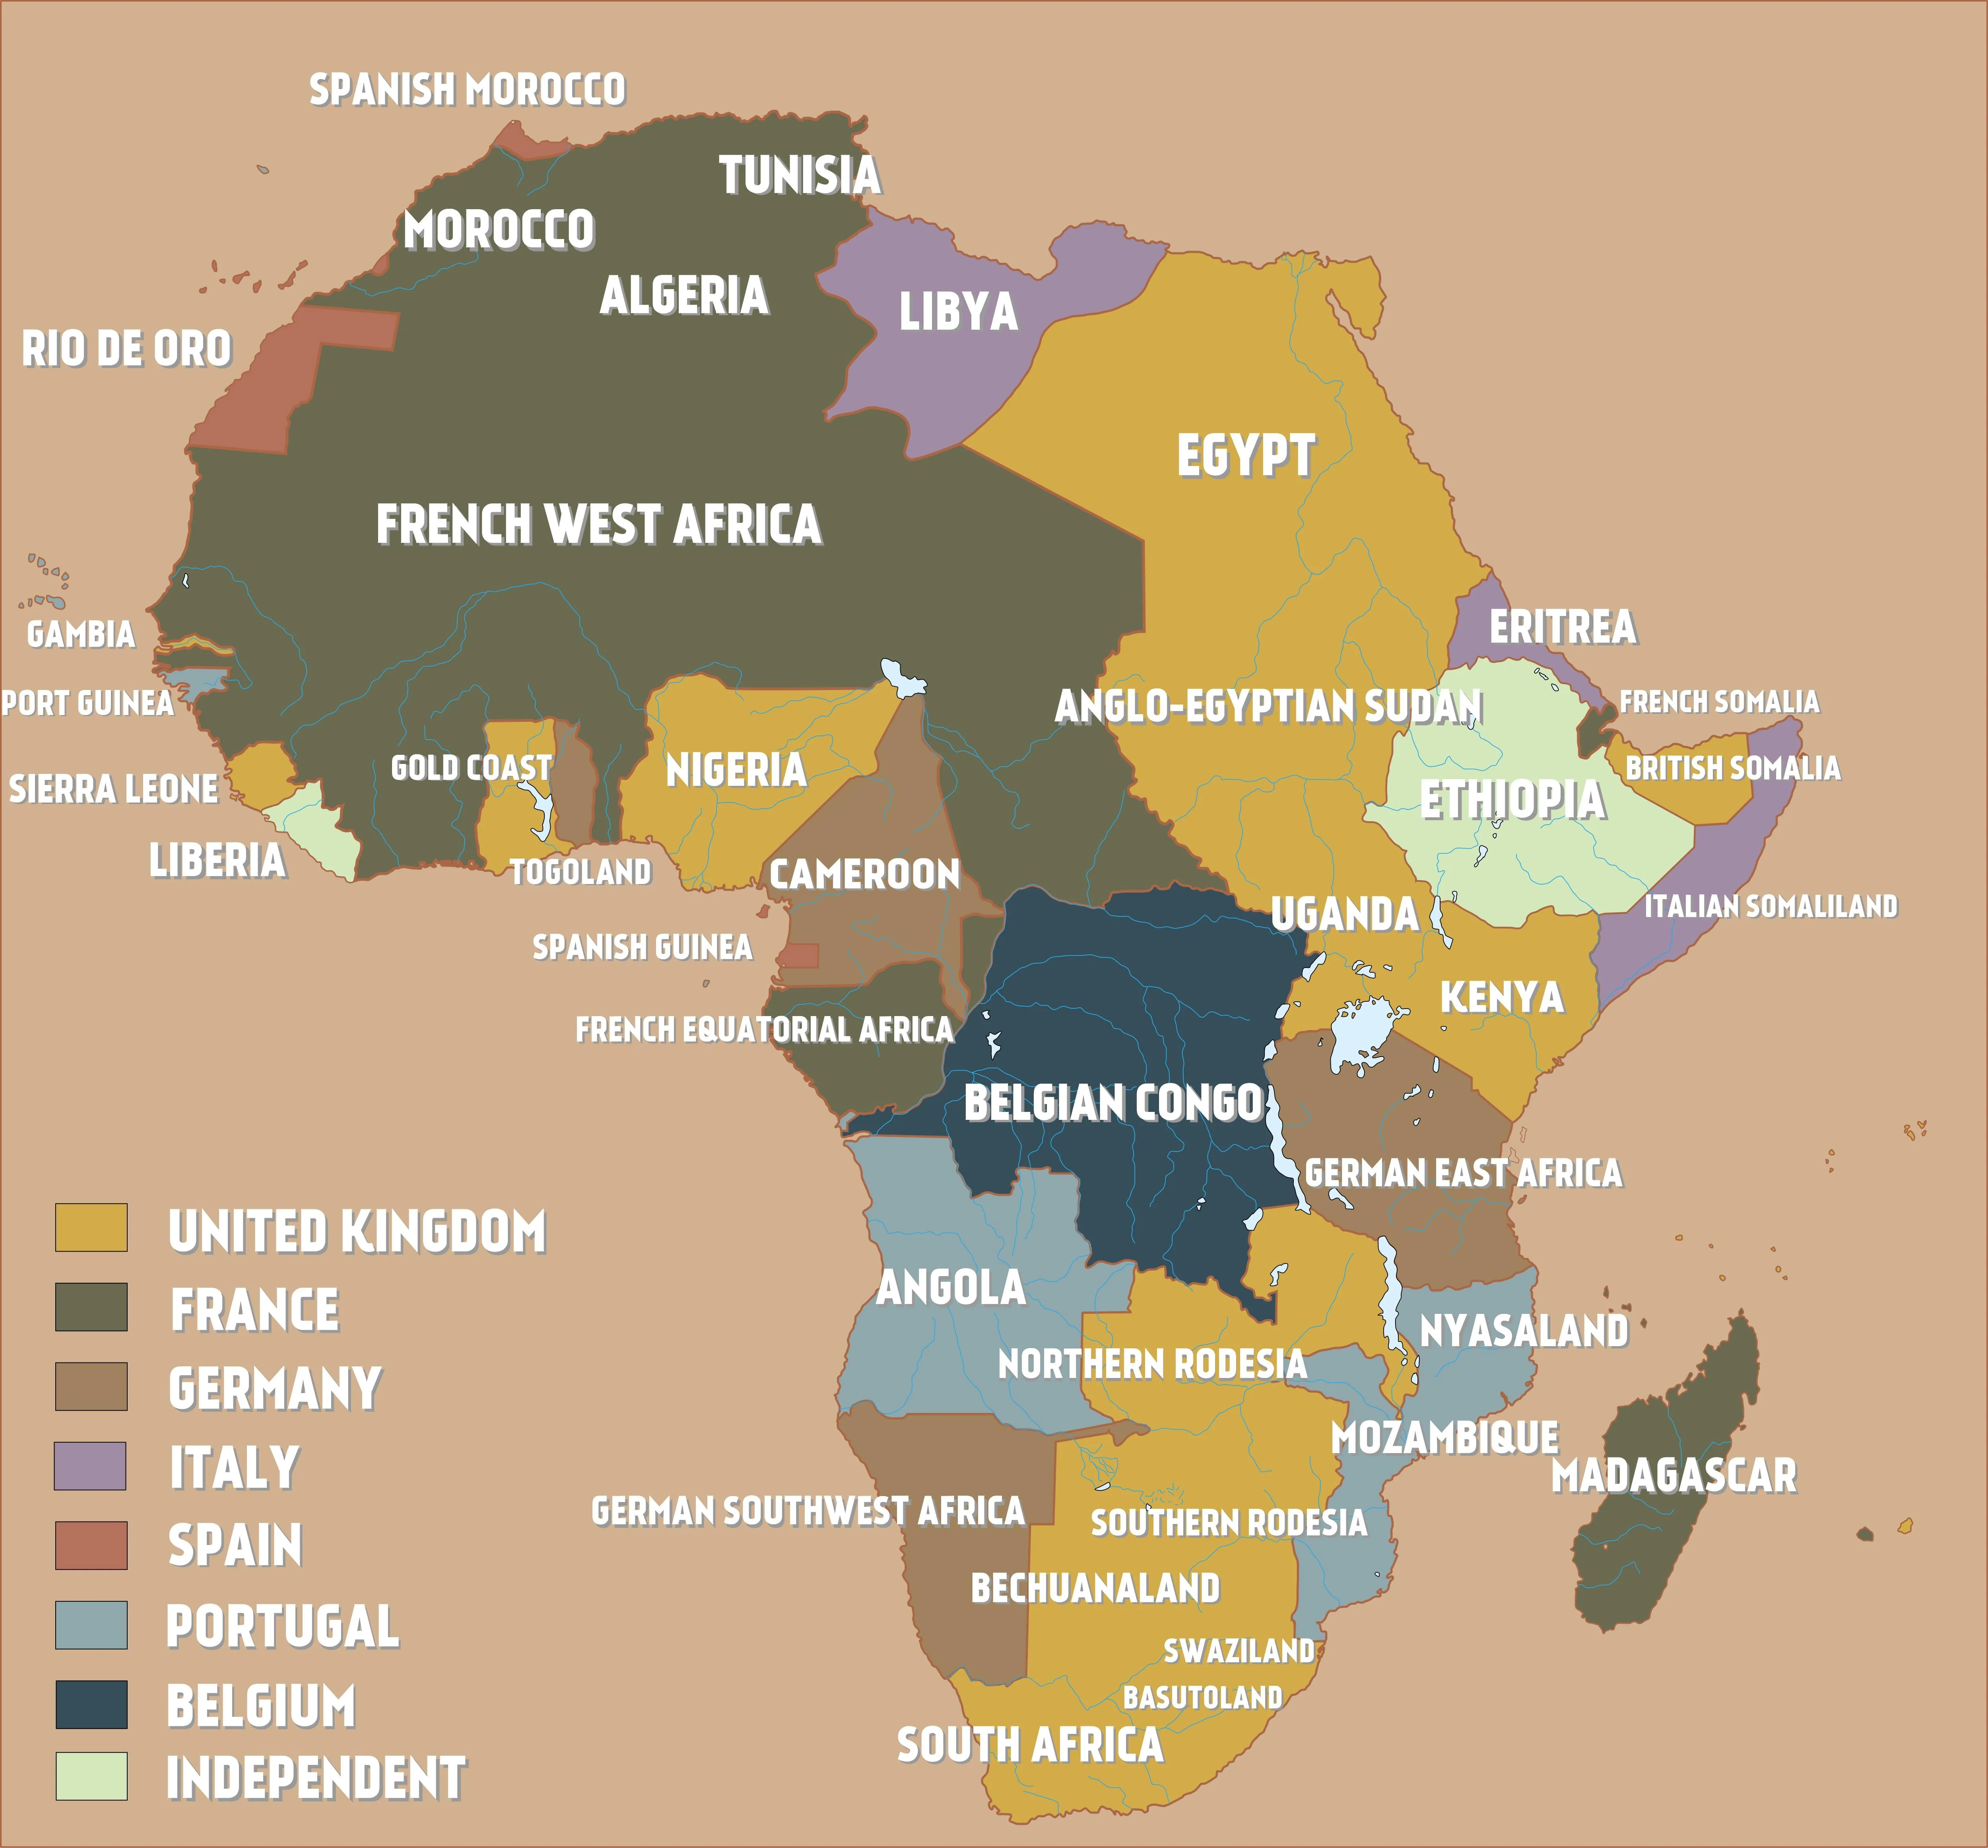 A Map Of Colonial Africa Just Before The Outbreak Of World